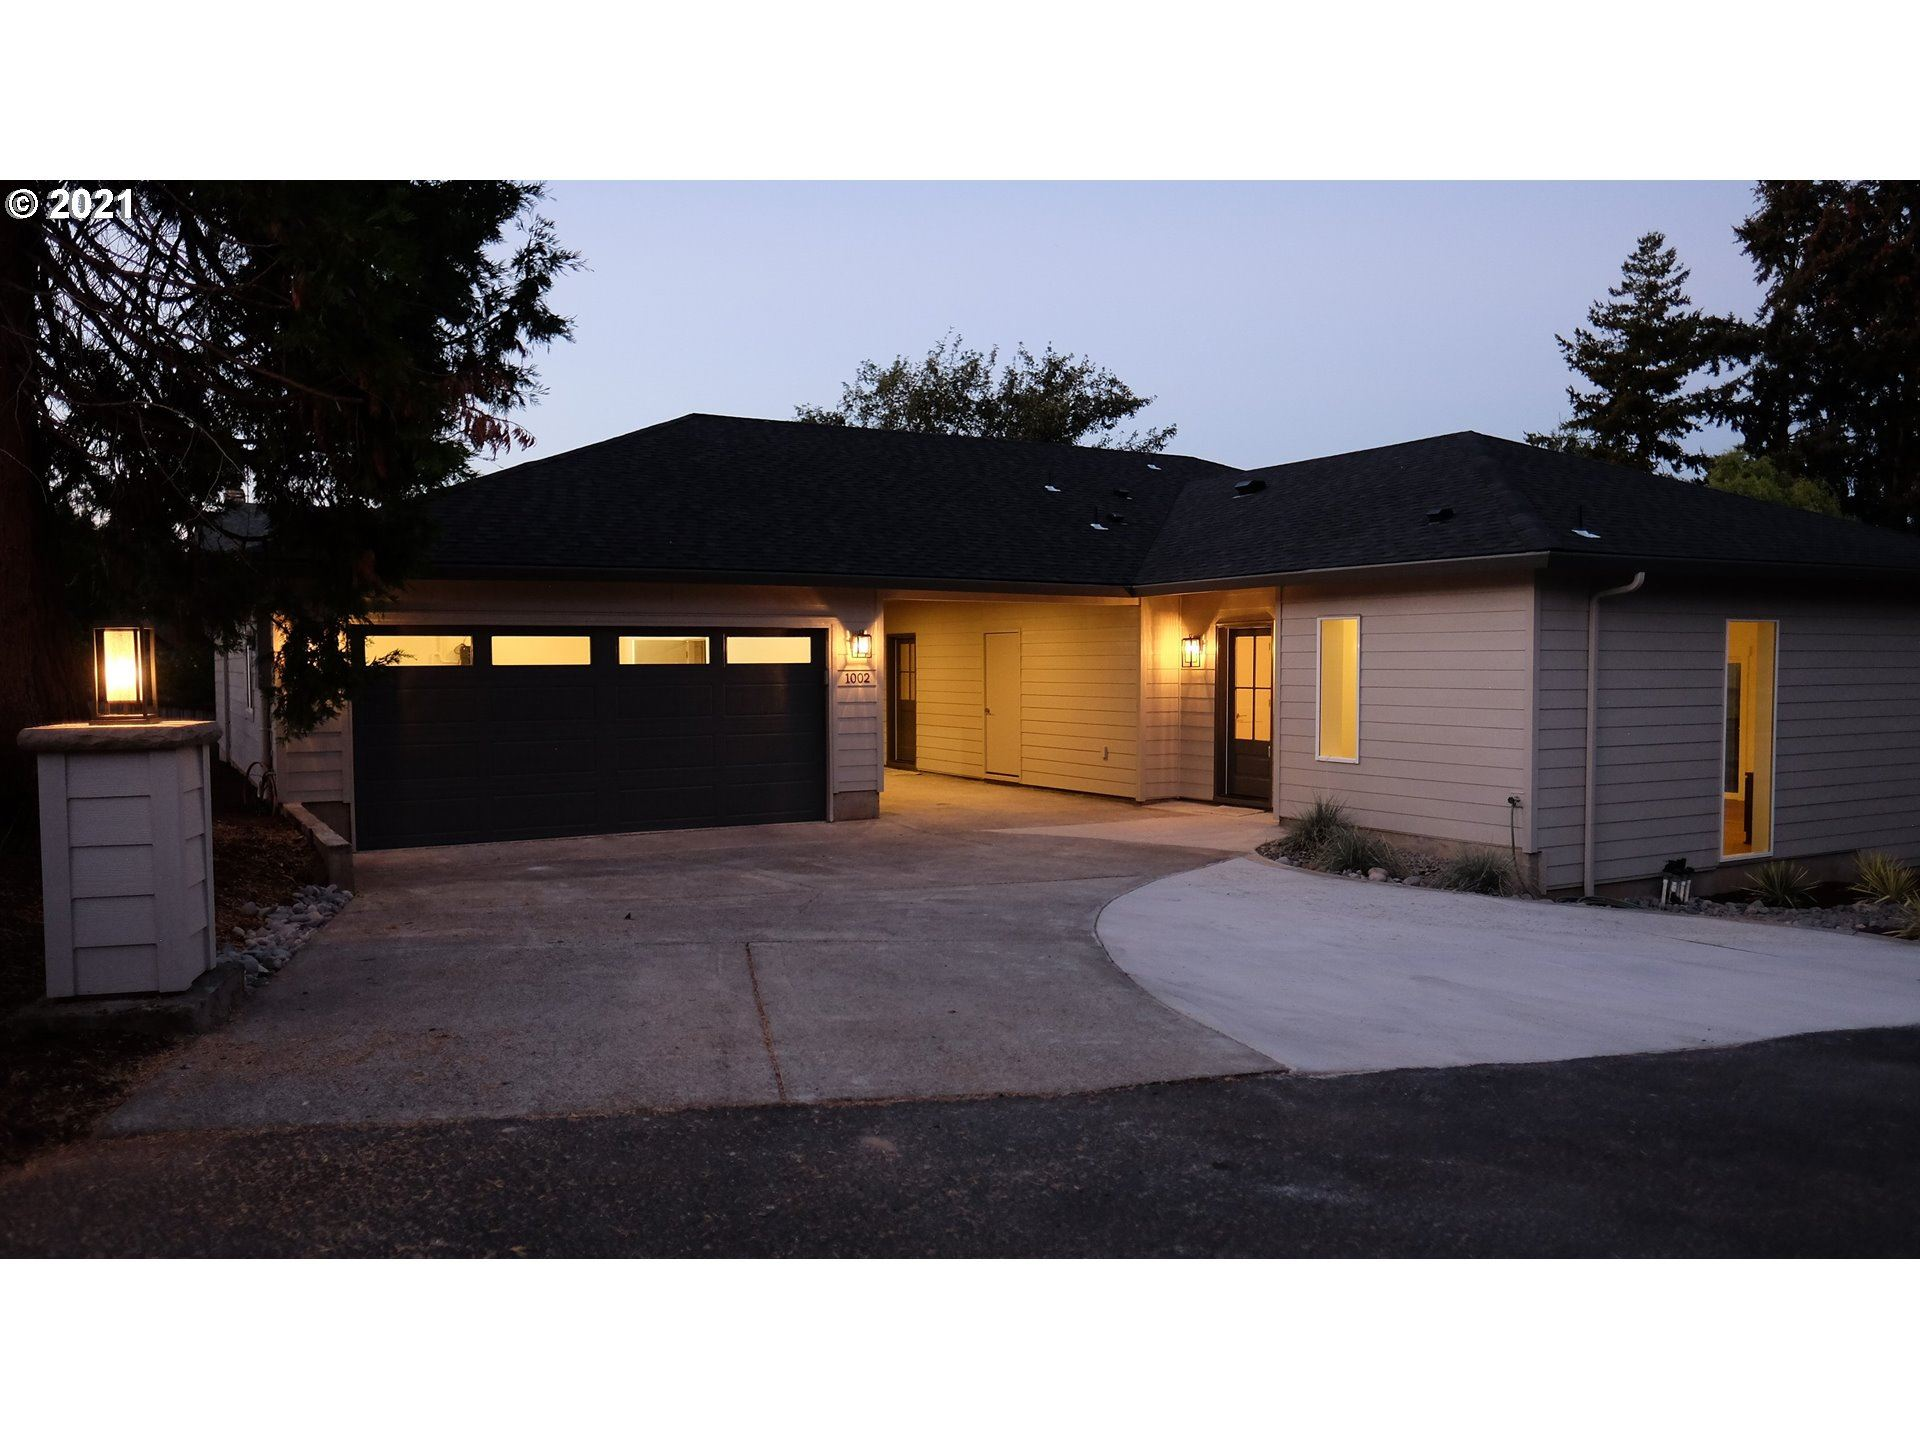 1002 NW 103RD ST, Vancouver, WA 98685 - MLS#: 21219269